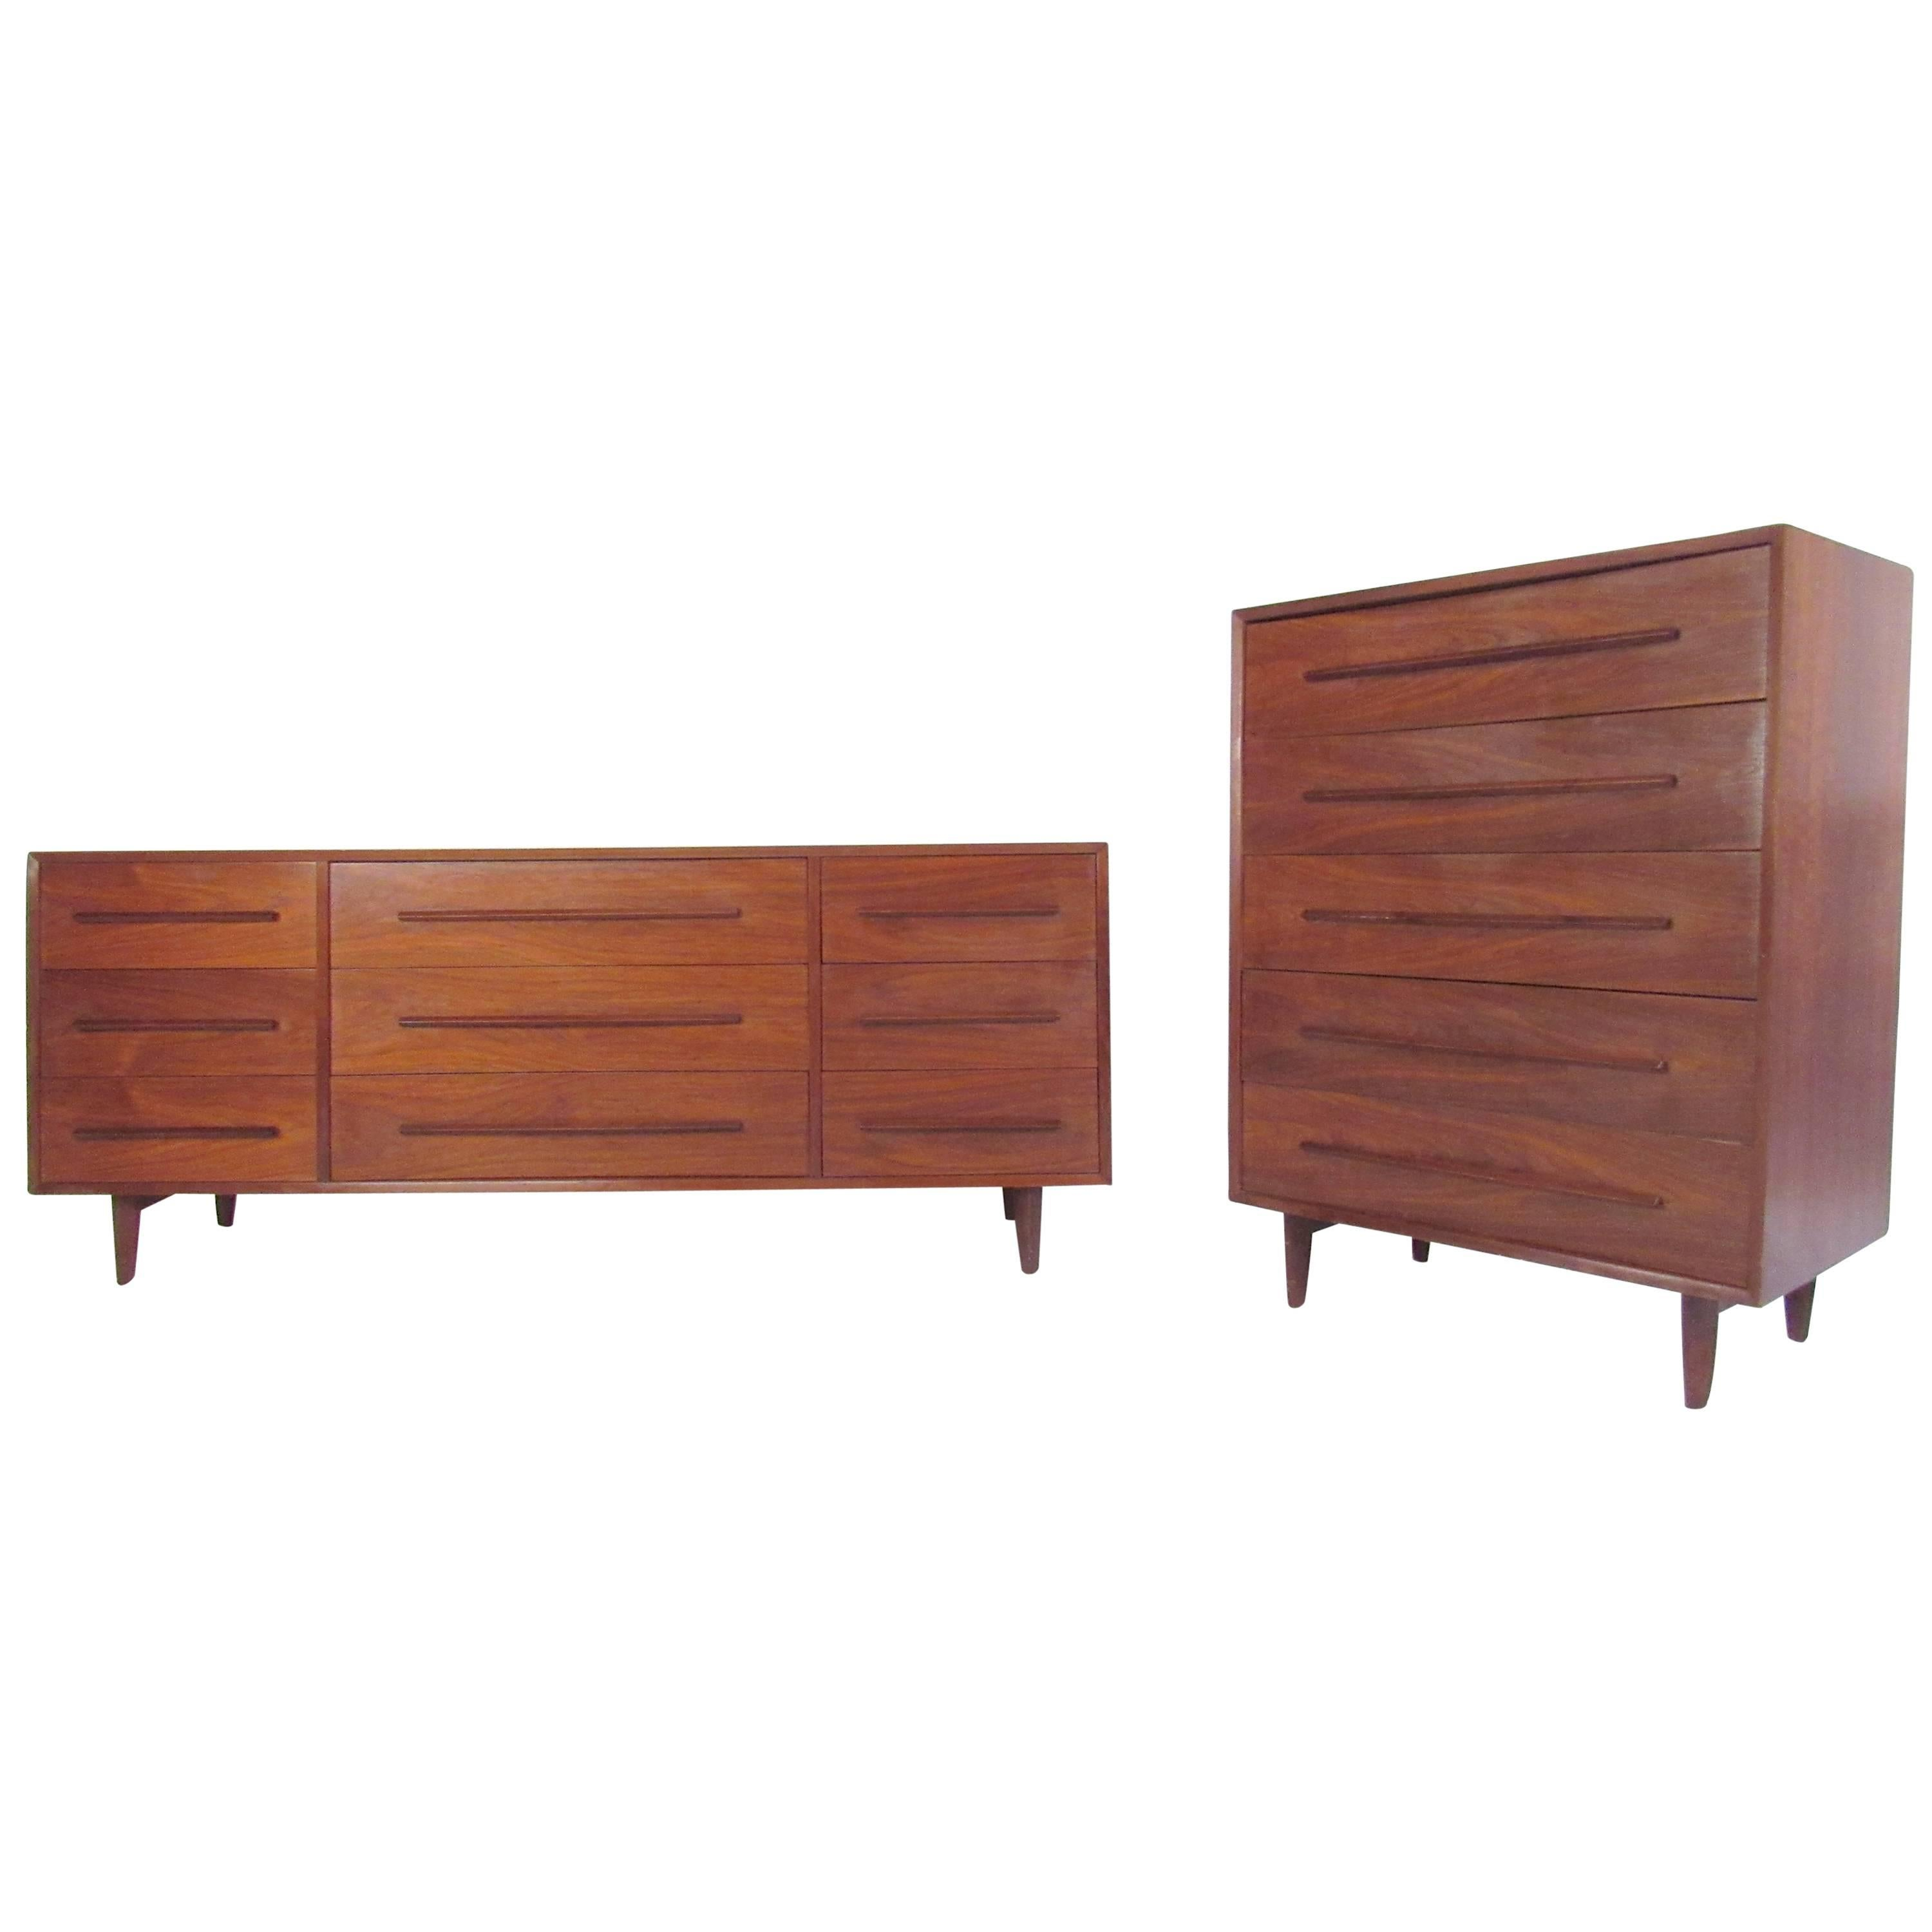 Pair of Widdicomb Bedroom Dressers in the Style of George Nakashima